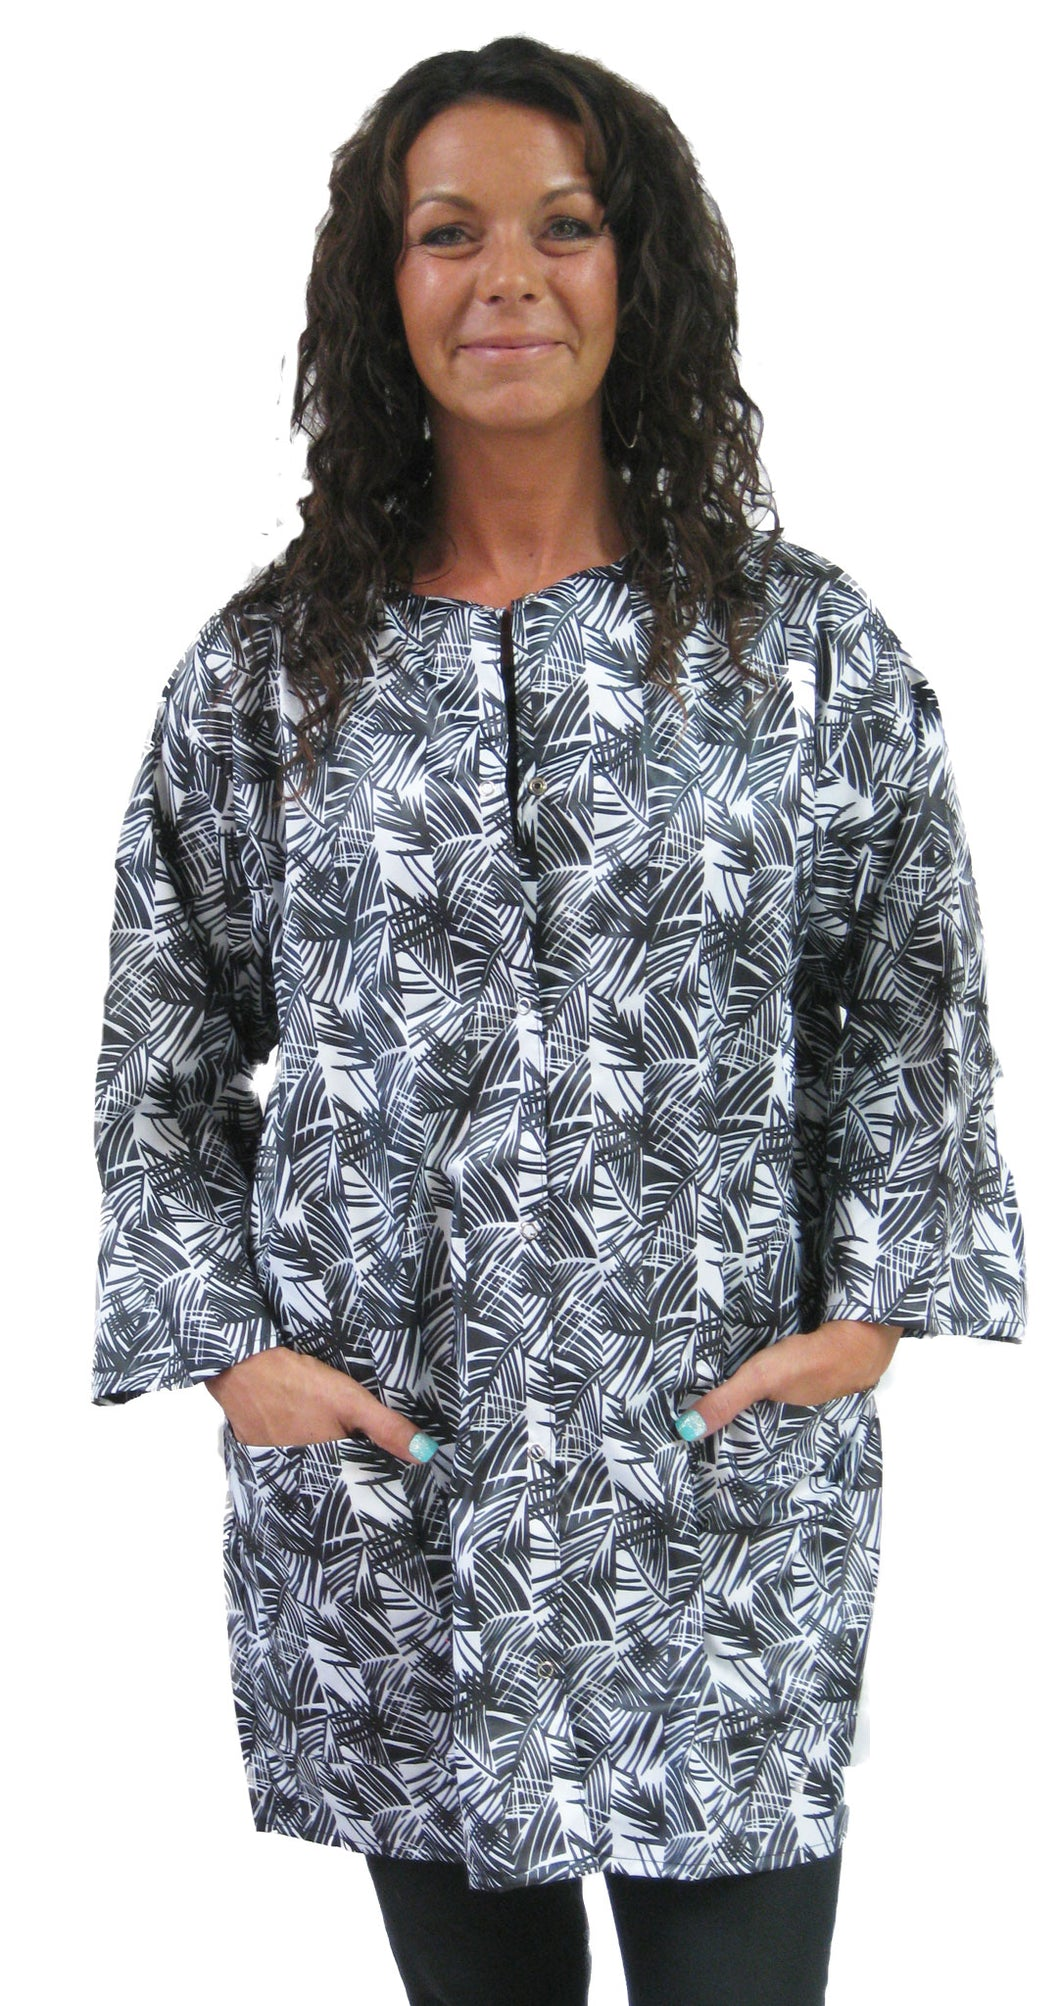 Hair Cutter Dog Groomer Smock Jacket Bamboo Print Regular Or Plus Size